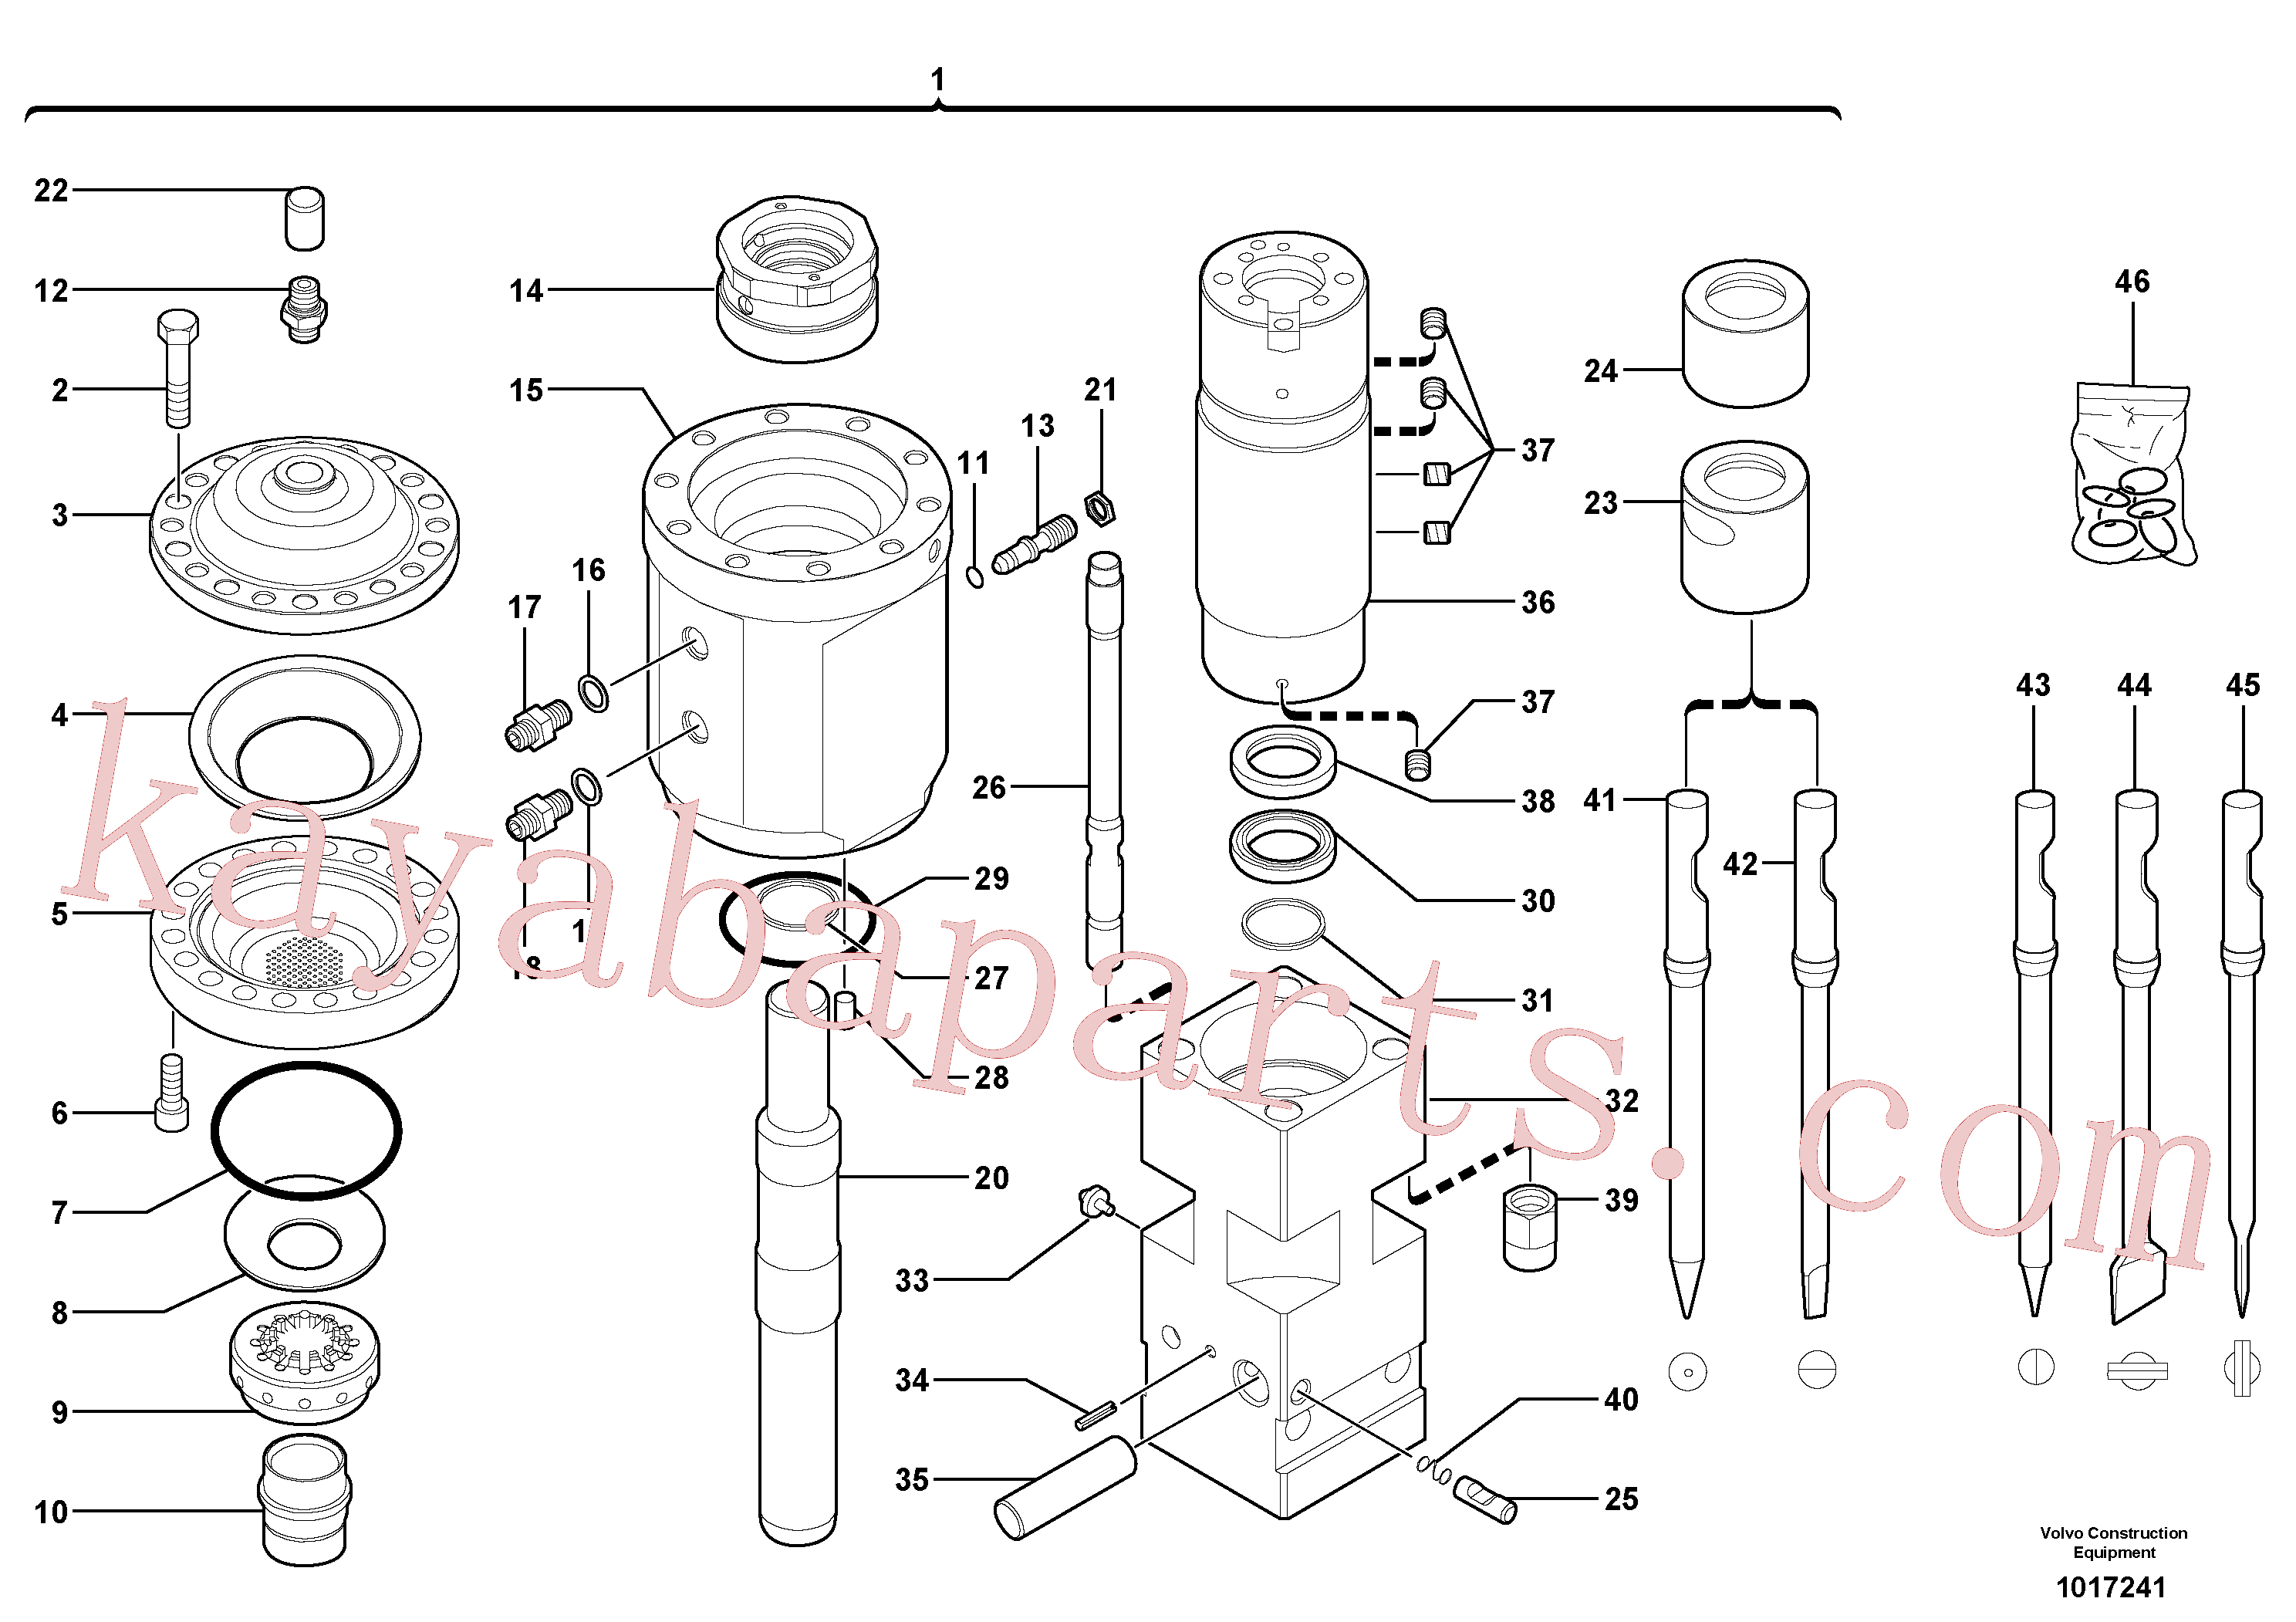 VOE11716199 for Volvo Hammer(1017241 assembly)